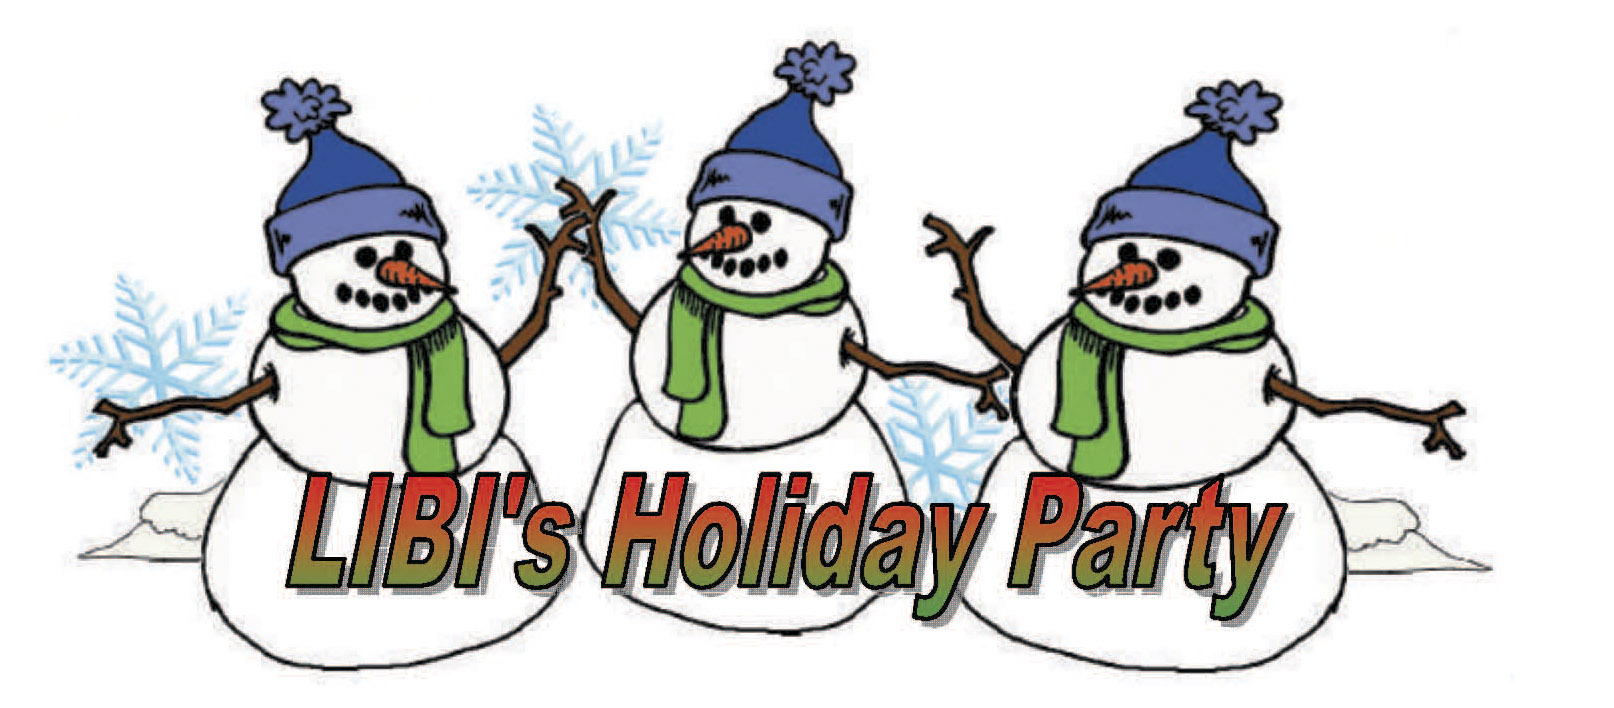 Holiday Party Clipart Free Cliparts That You Can Download To You